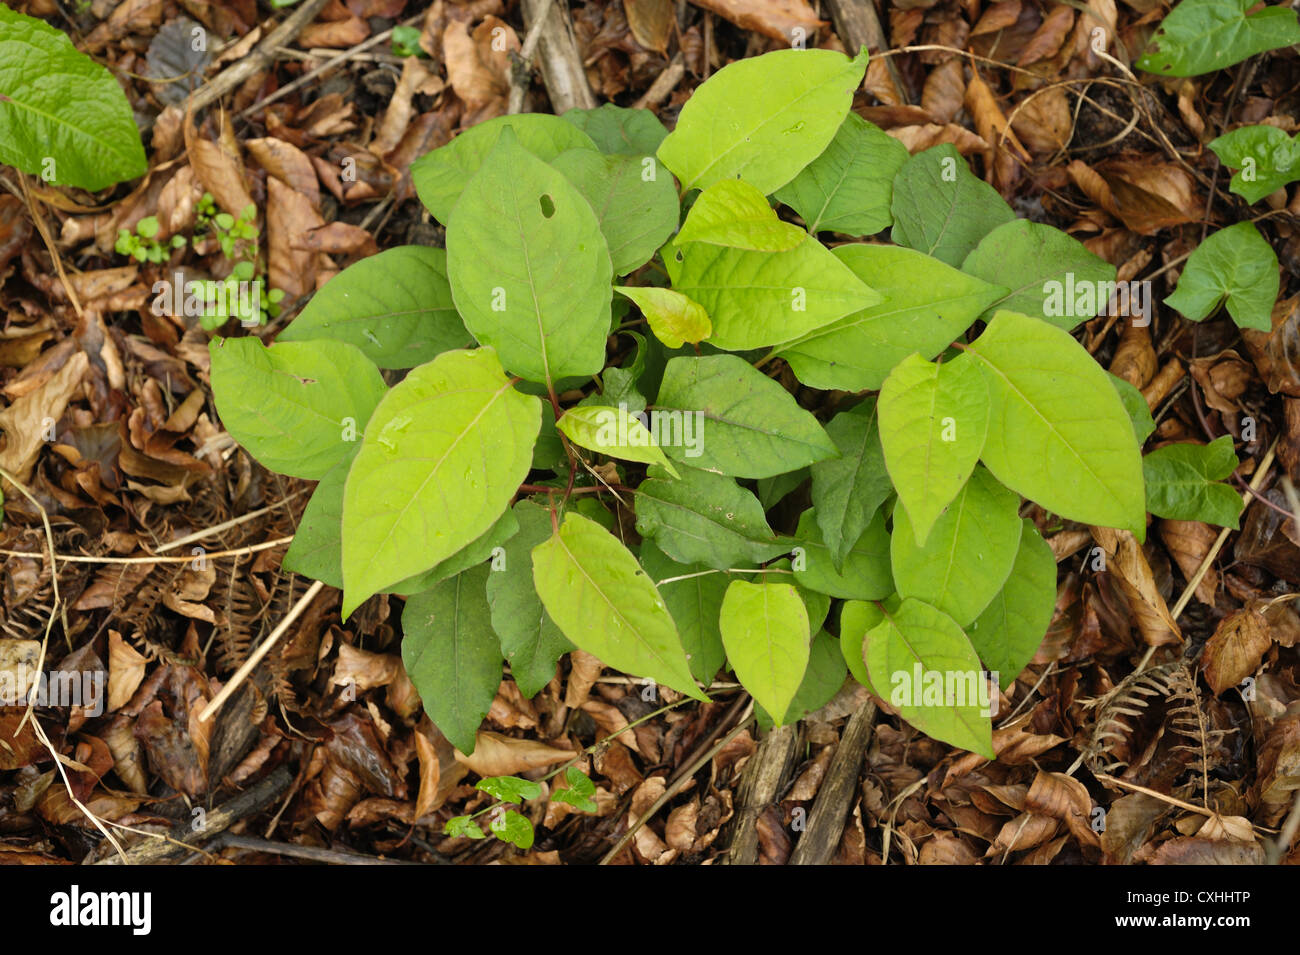 Japanese knotweed Fallopia japonica regrowth of plants after herbicide application - Stock Image